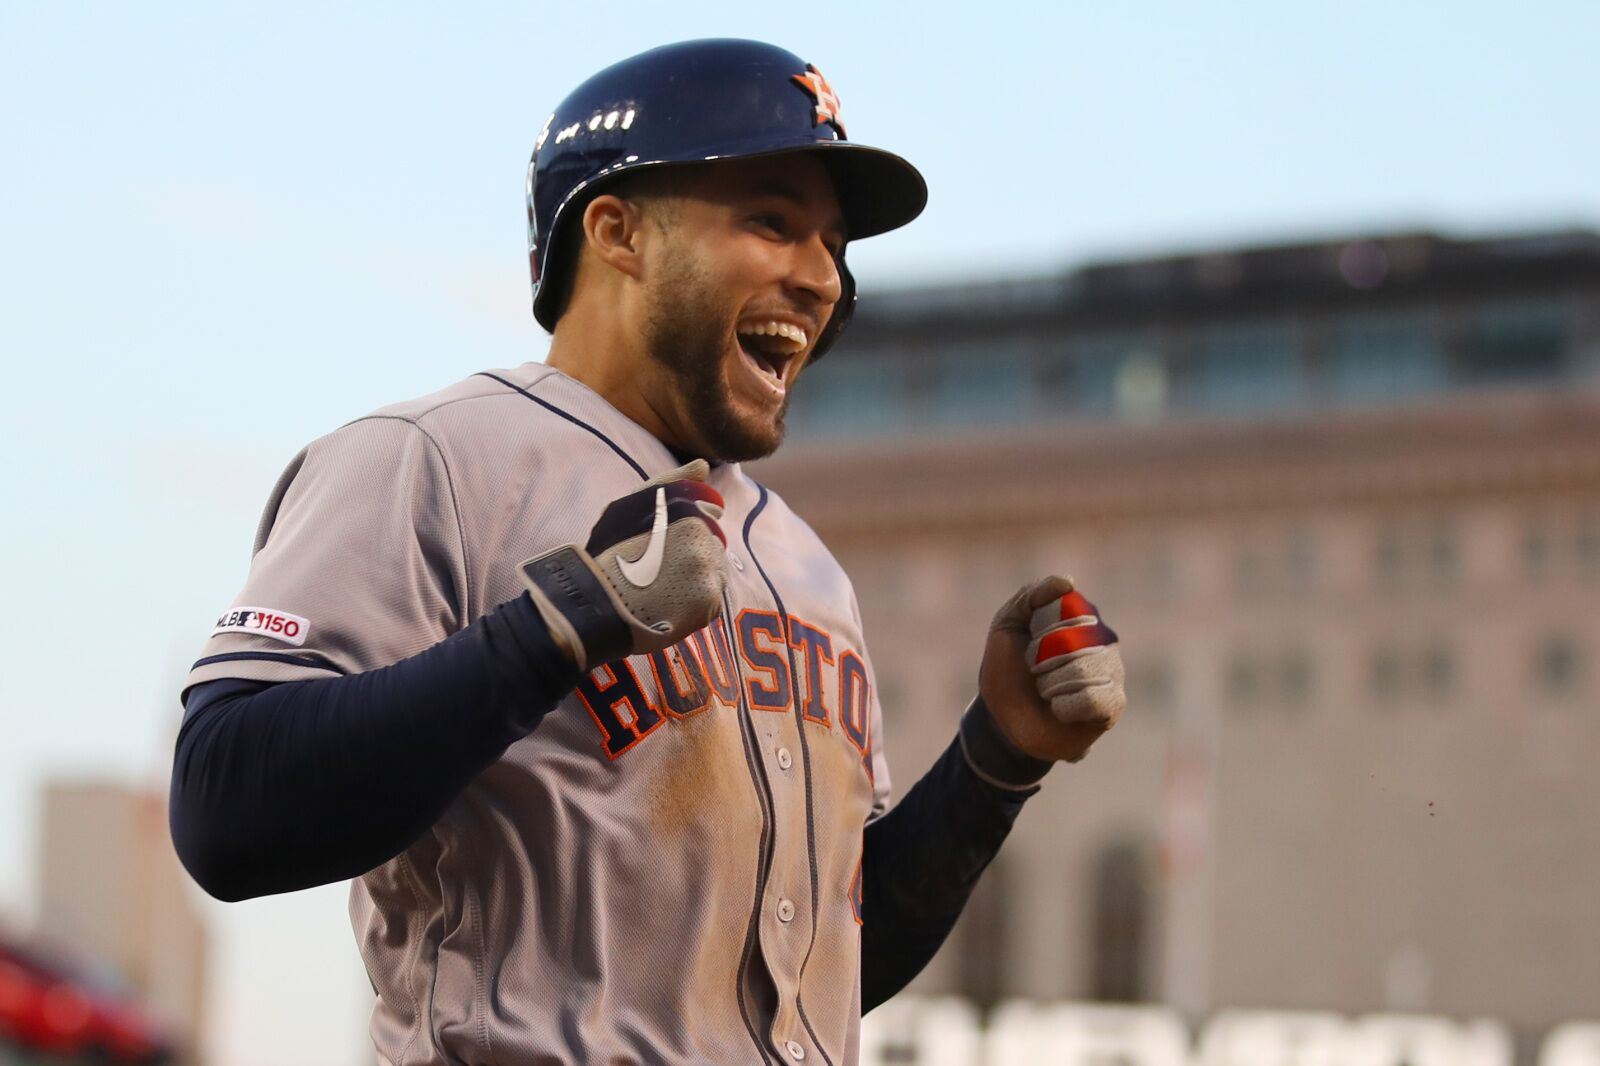 Three things from the Astros' 11-4 win over the Tigers